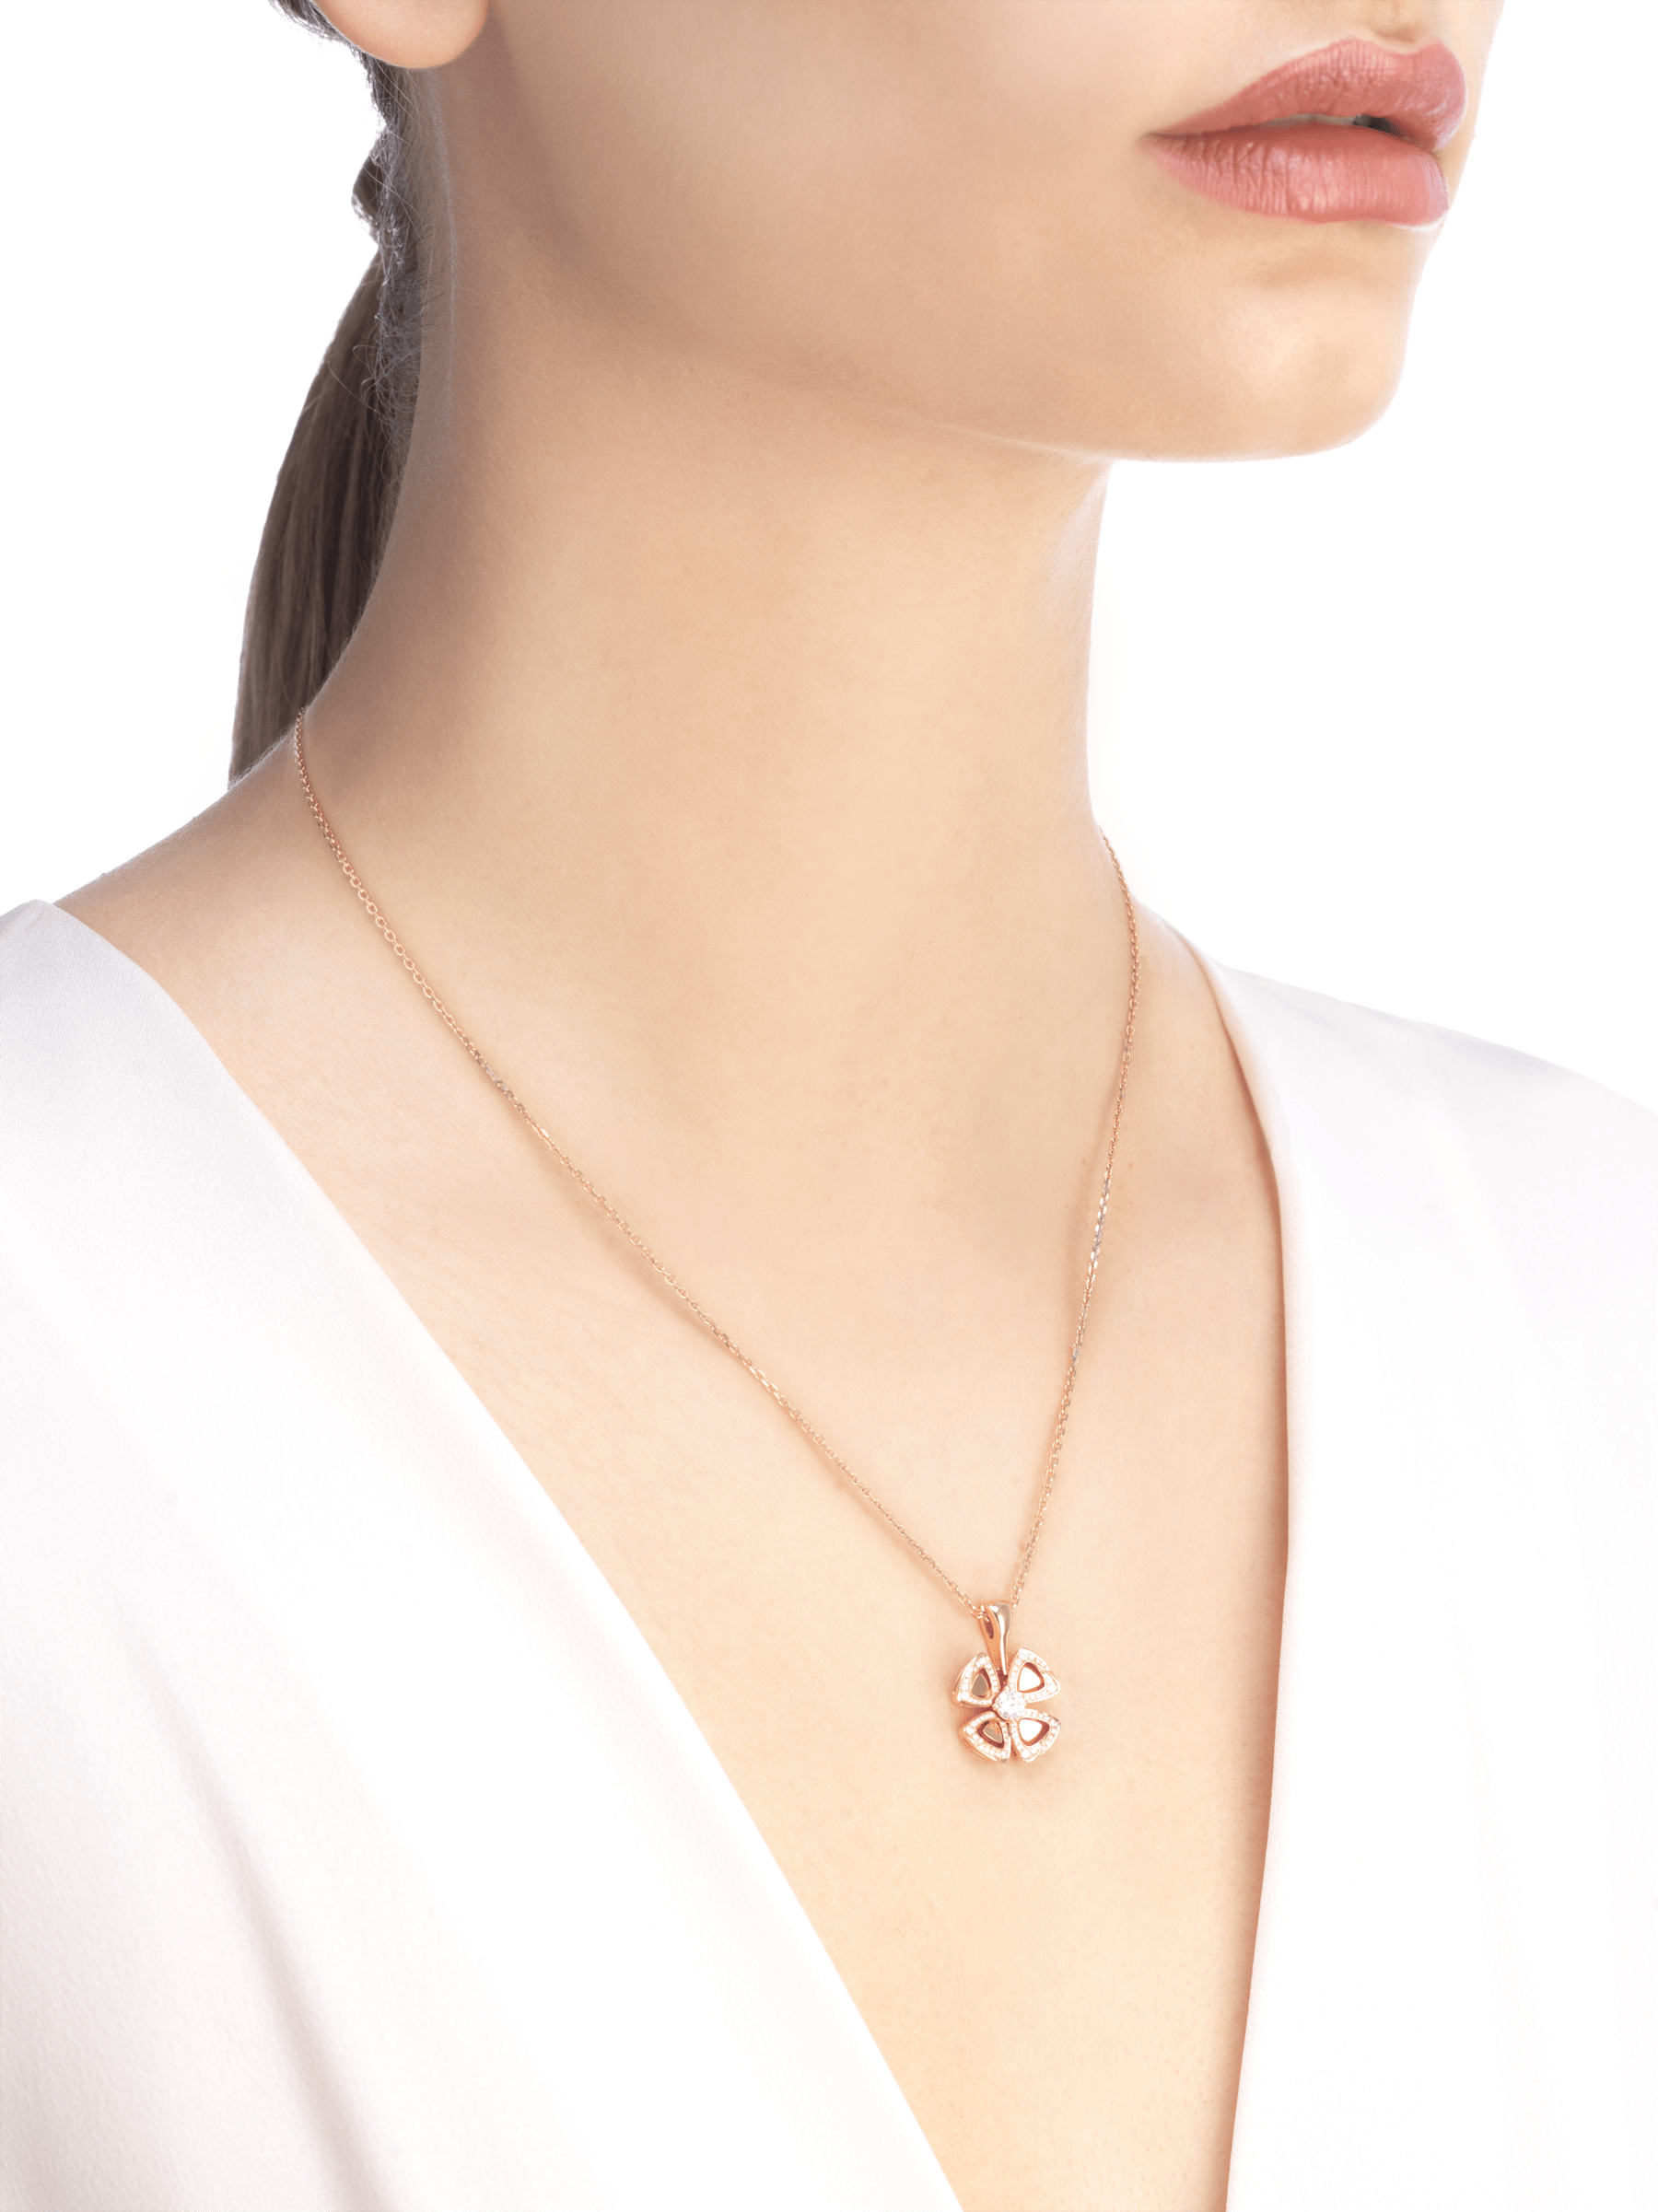 Fiorever 18 kt rose gold necklace set with a central diamond (0.20 ct) and pavé diamonds (0.18 ct) 356223 image 4